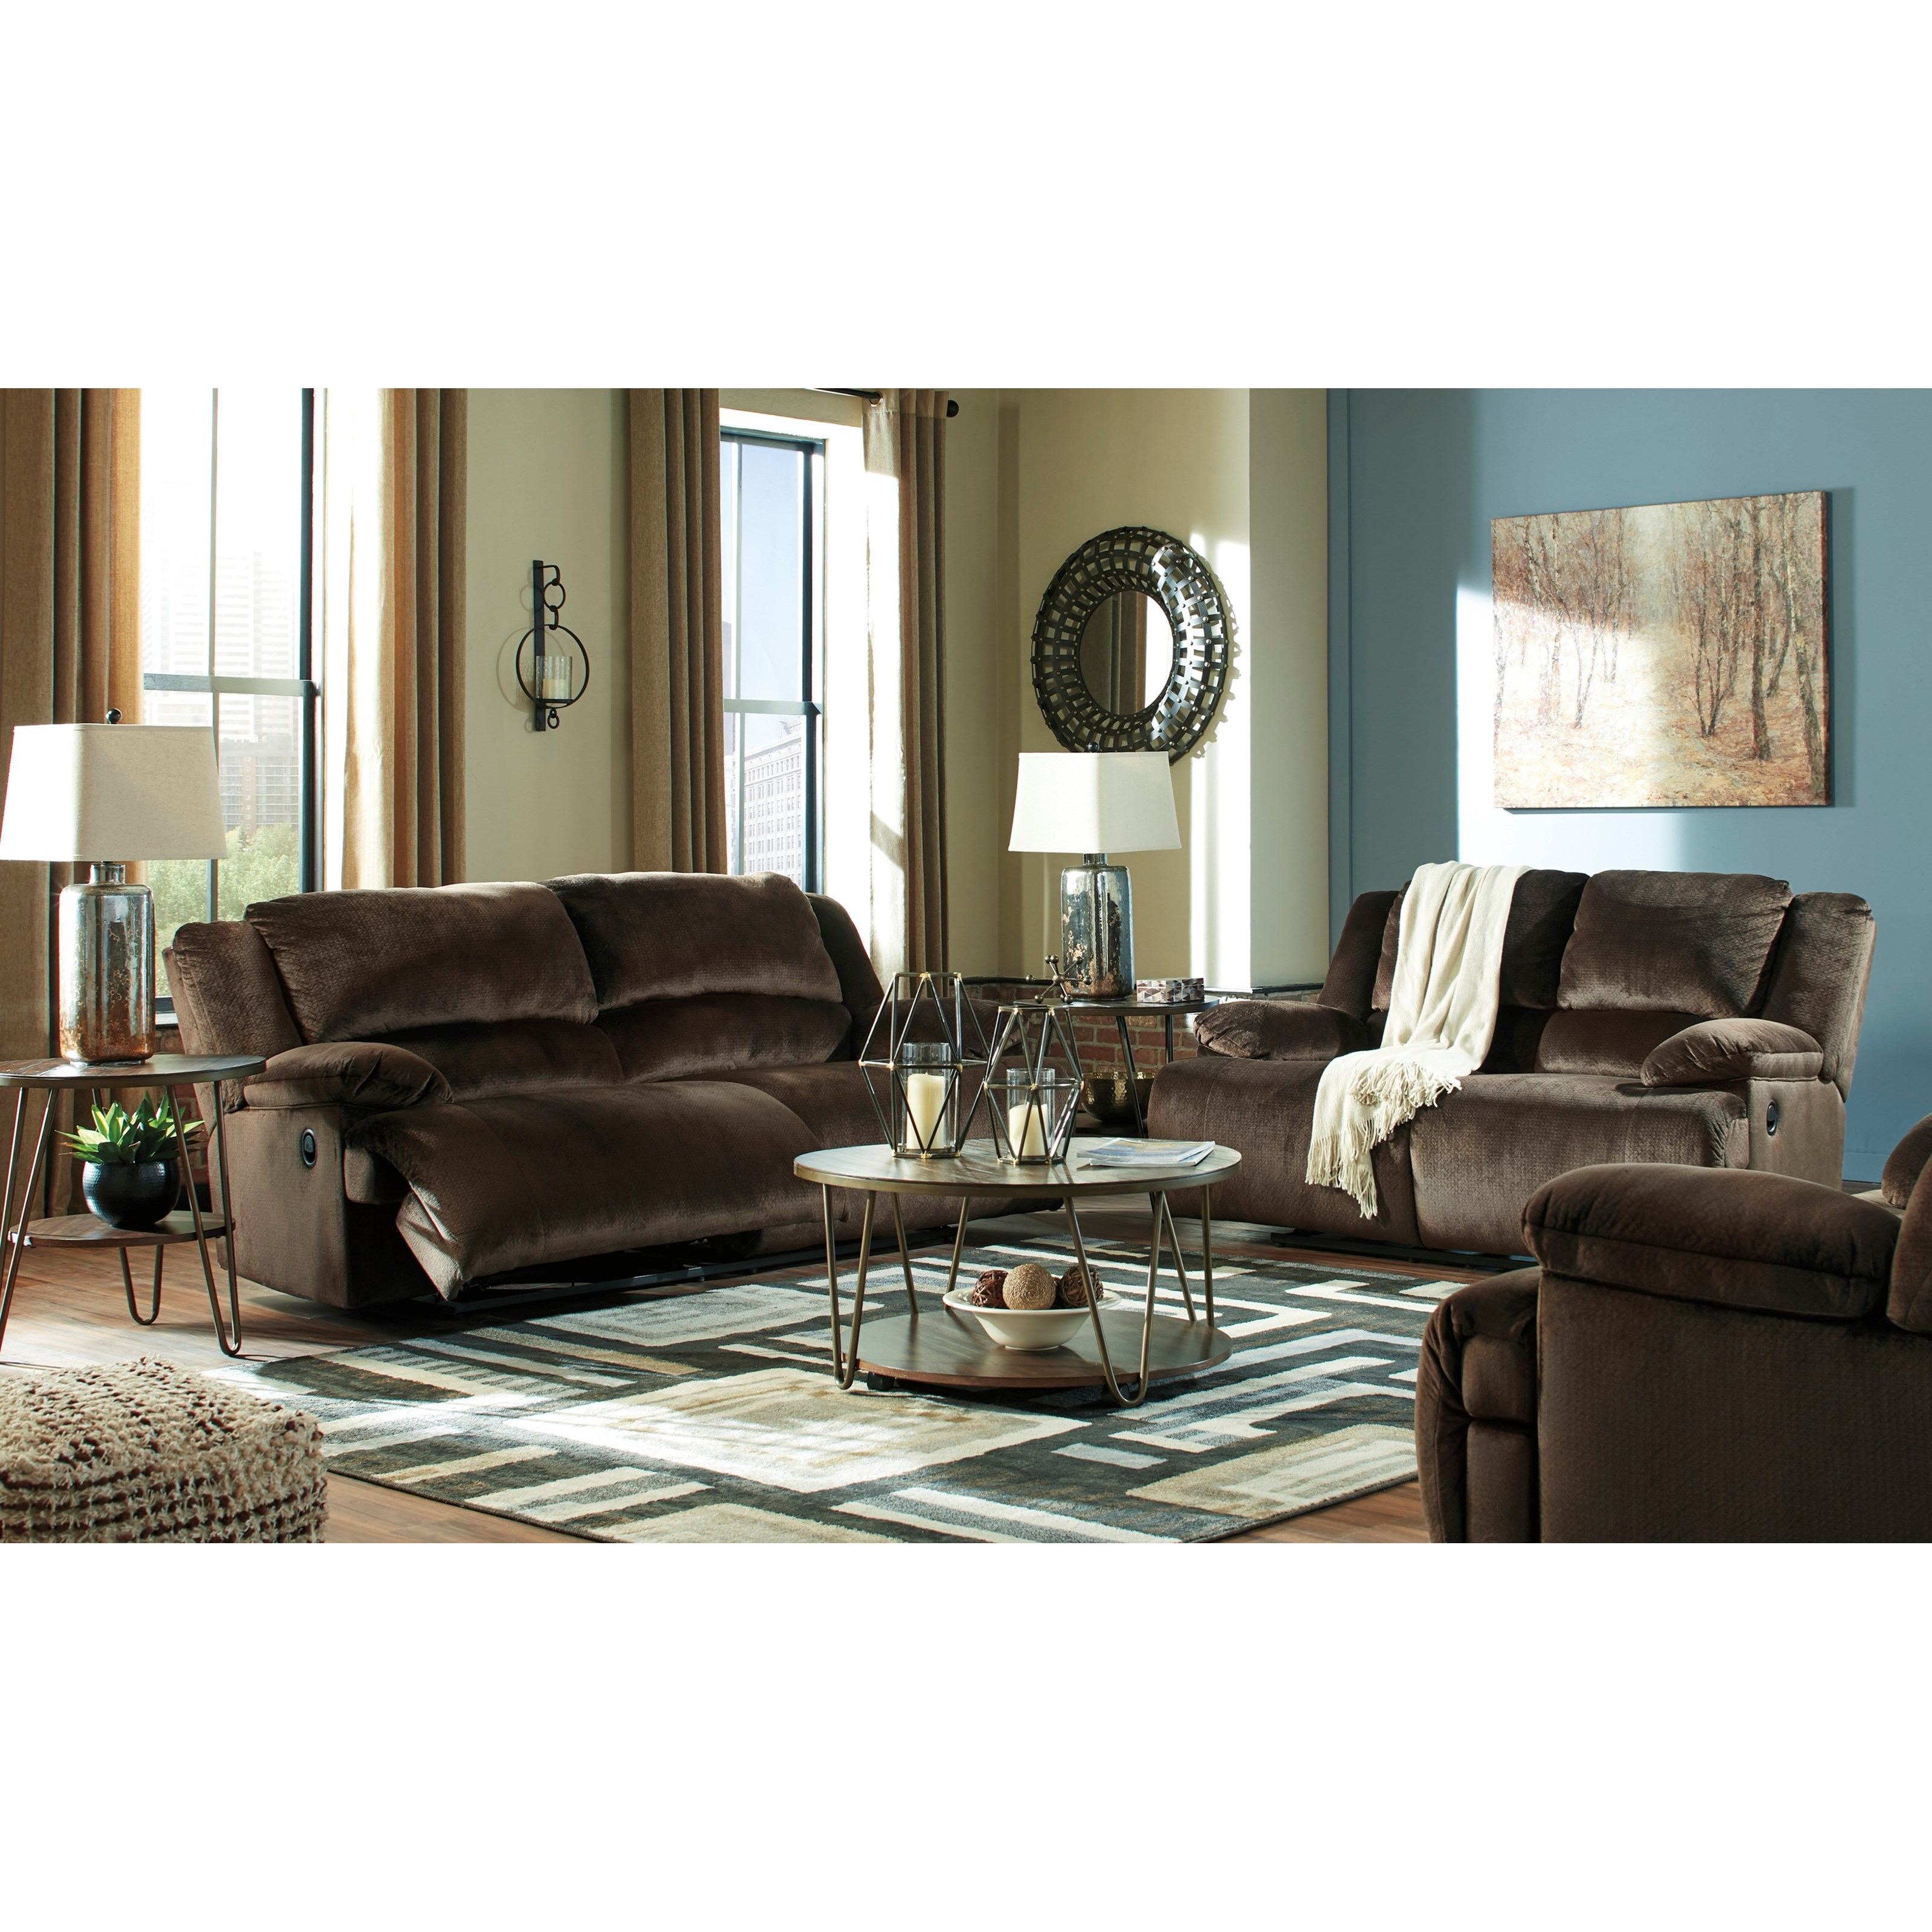 Clonmel Power Reclining Living Room Group by Signature Design by Ashley at Northeast Factory Direct